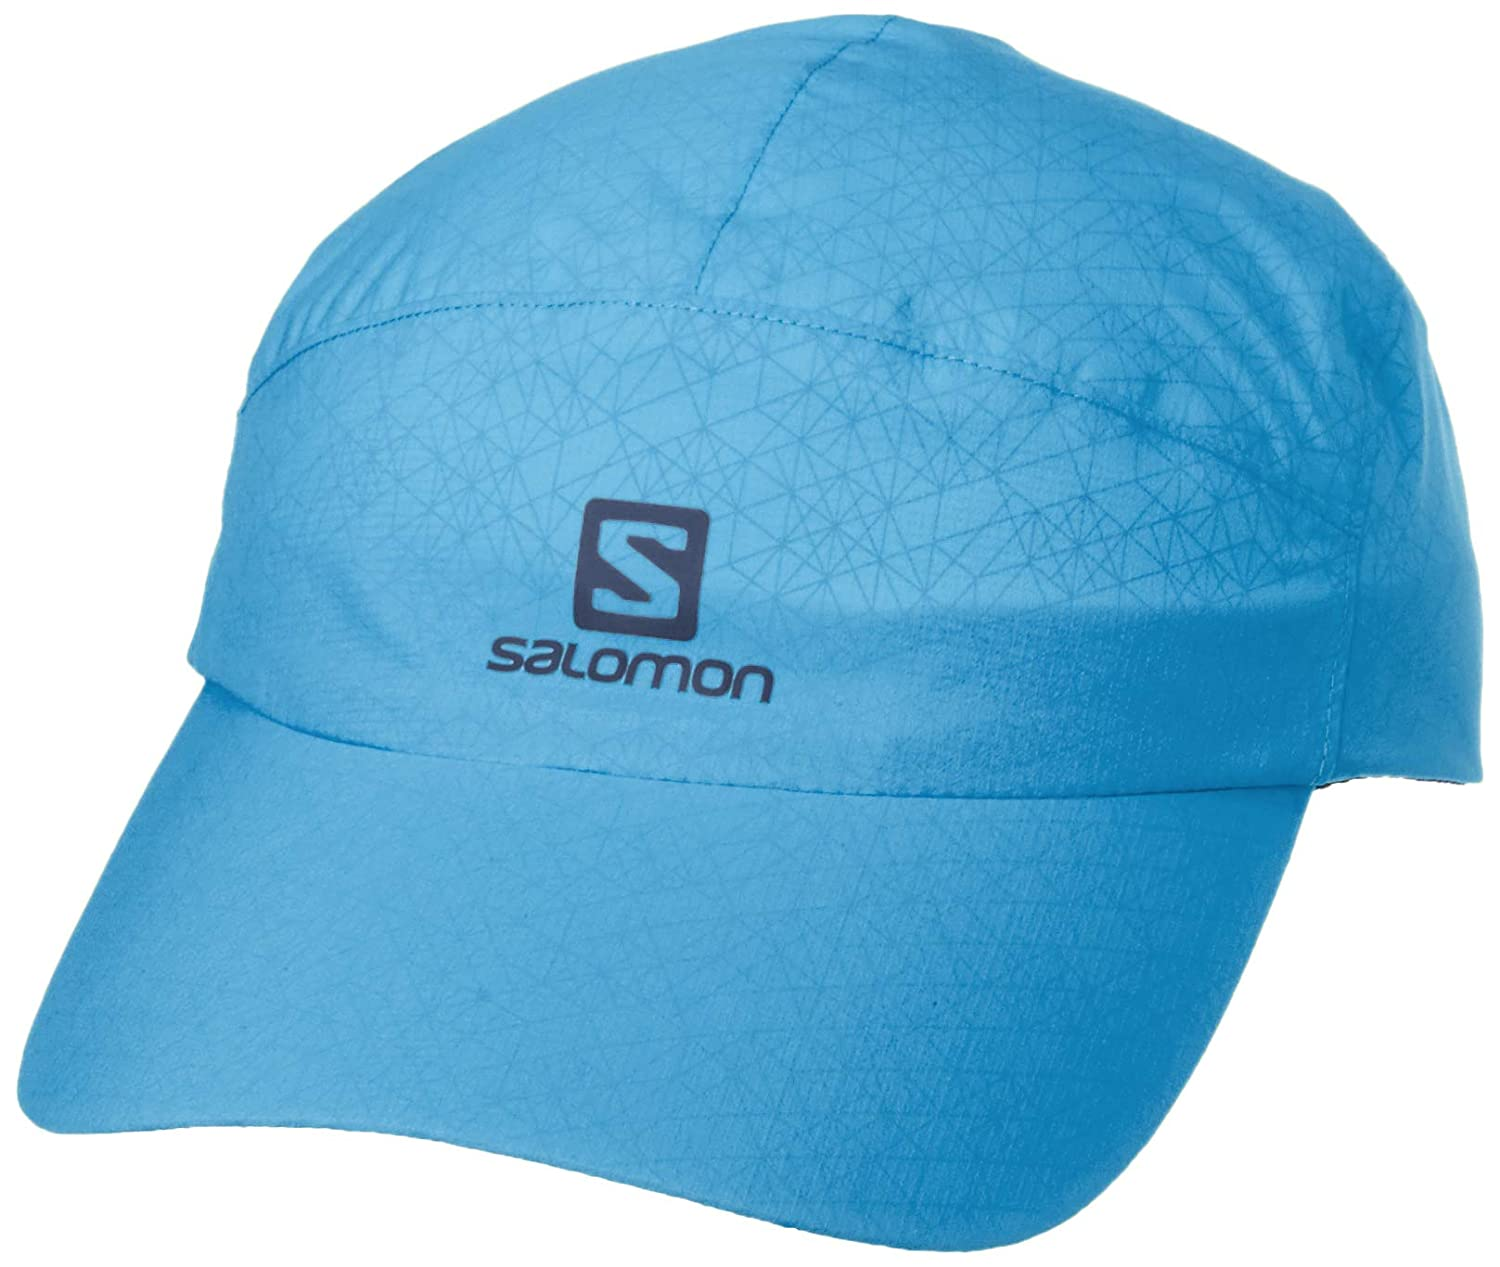 SALOMON Cap Waterproof Cap - Gorra, Unisex Adulto, Azul(Hawaiian ...